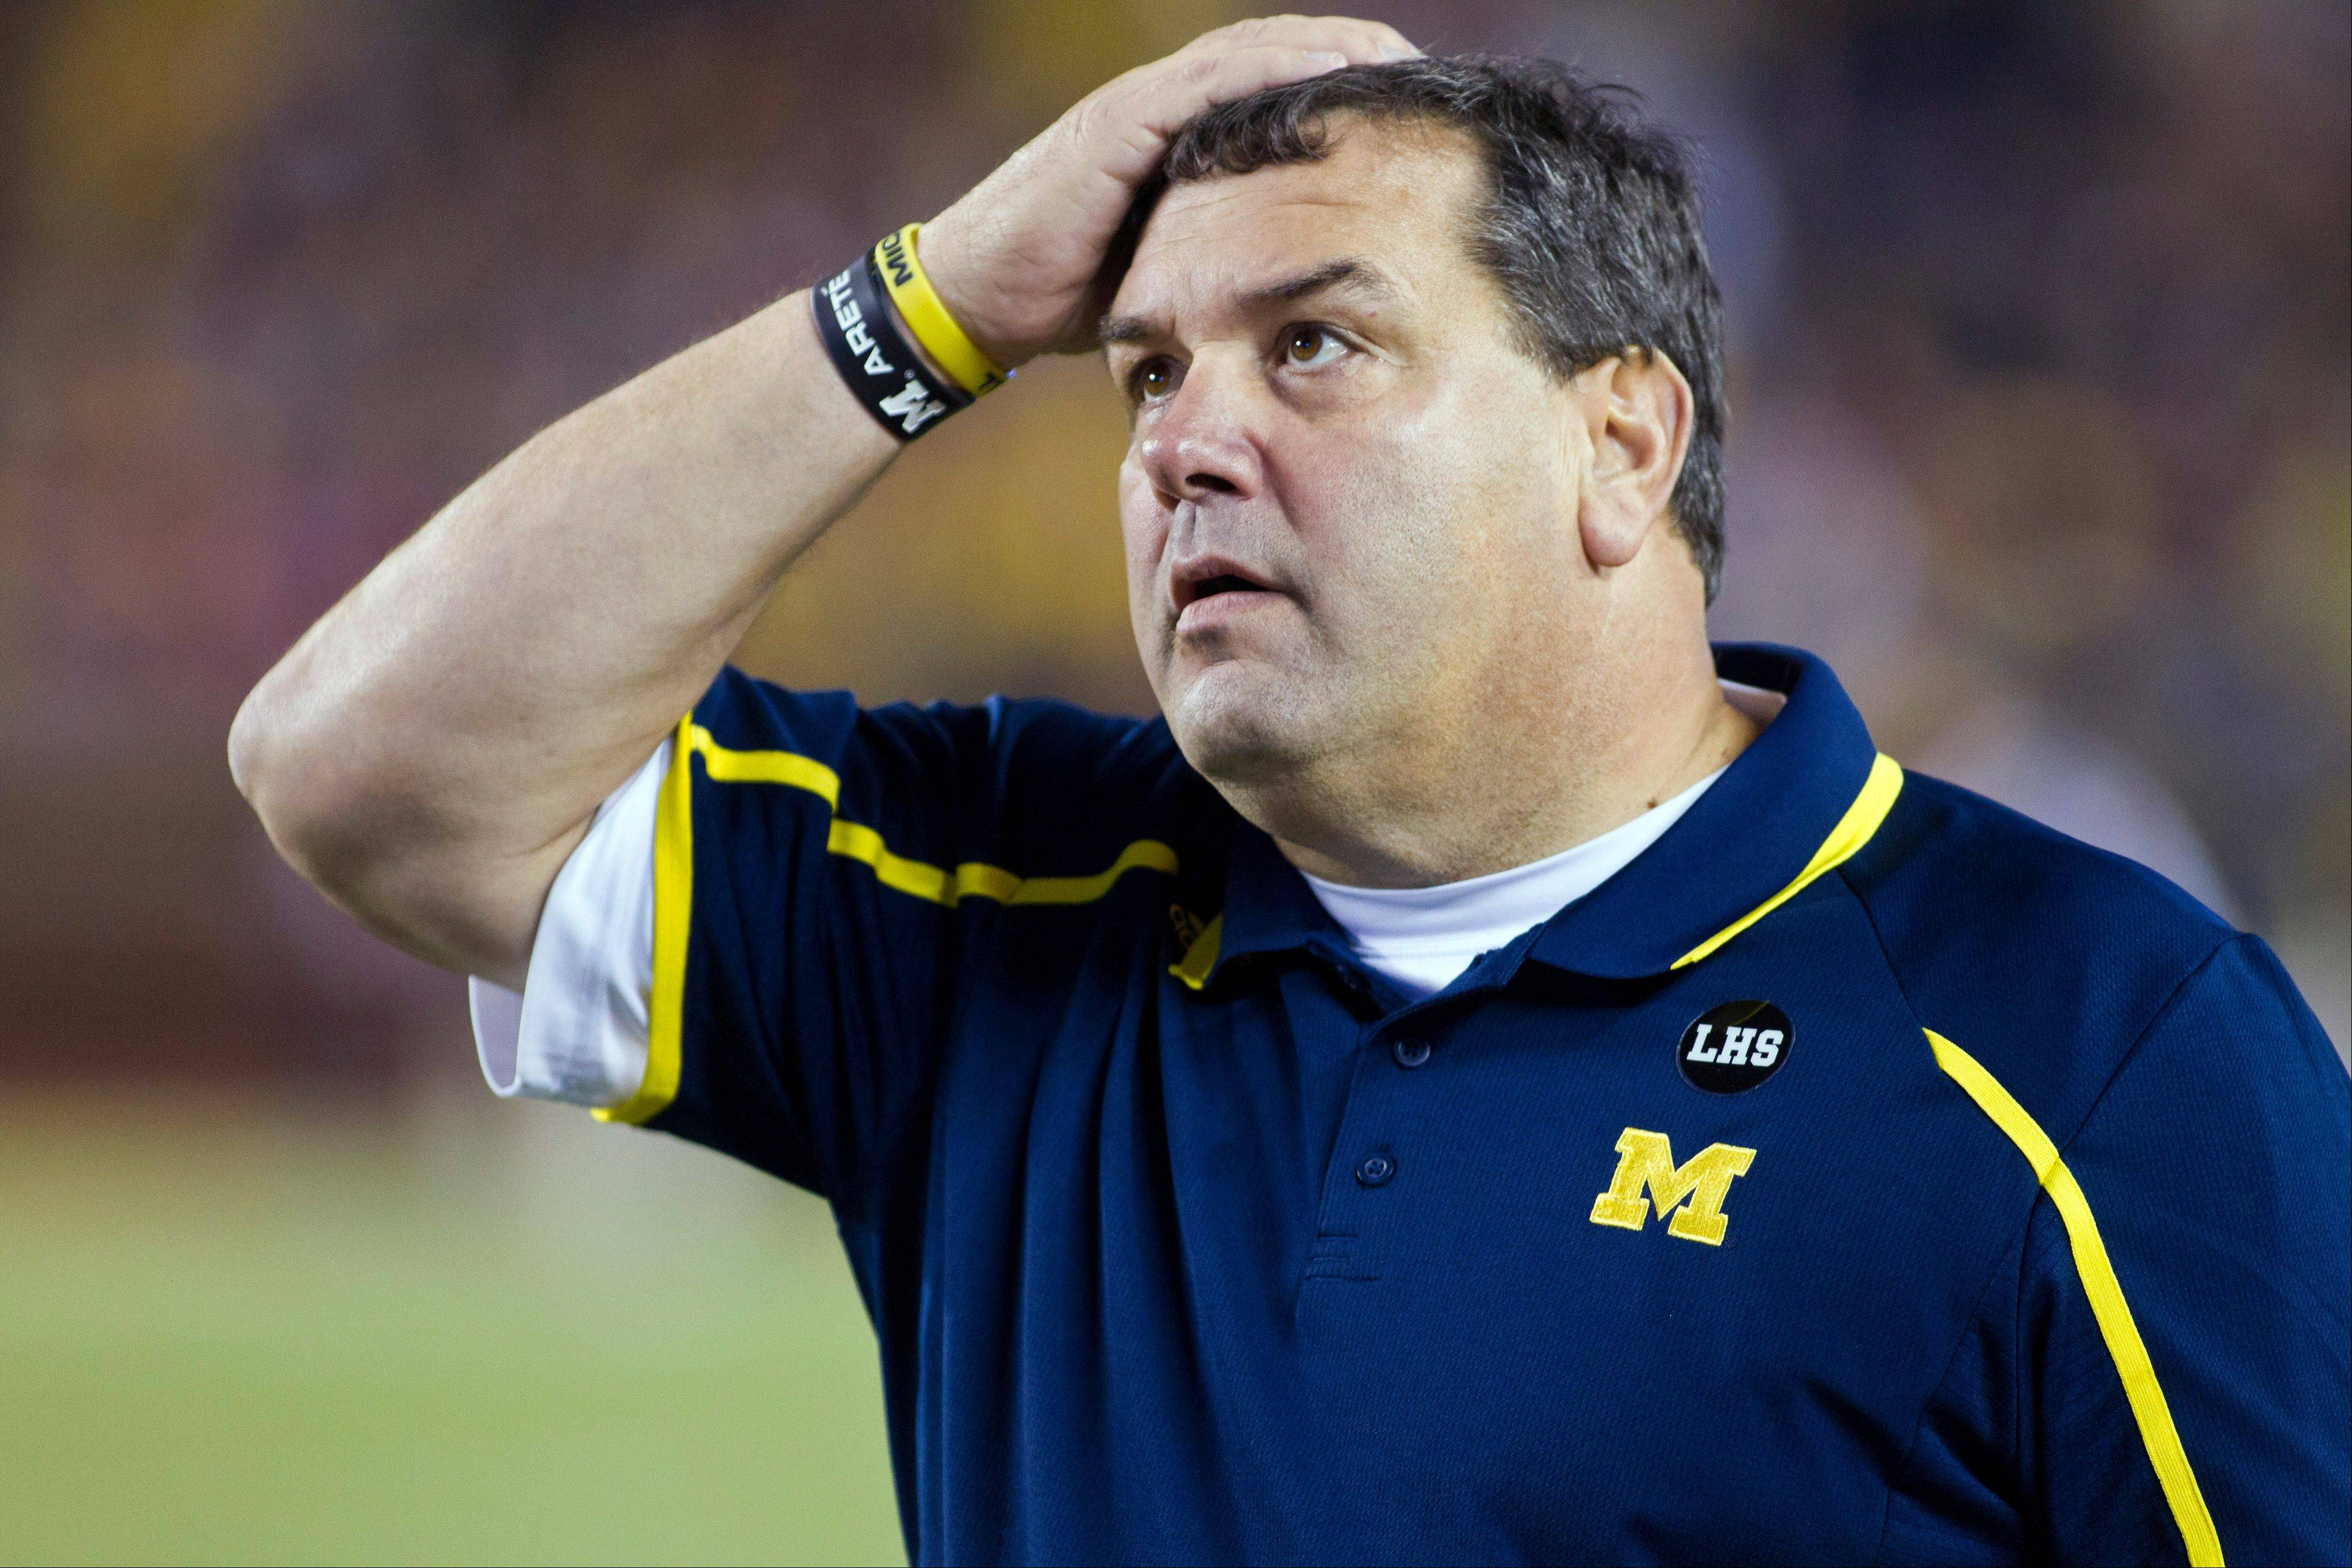 Michigan head coach Brady Hoke looks up at the scoreboard during the fourth quarter of Saturday�s loss to Nebraska in Ann Arbor, Mich.